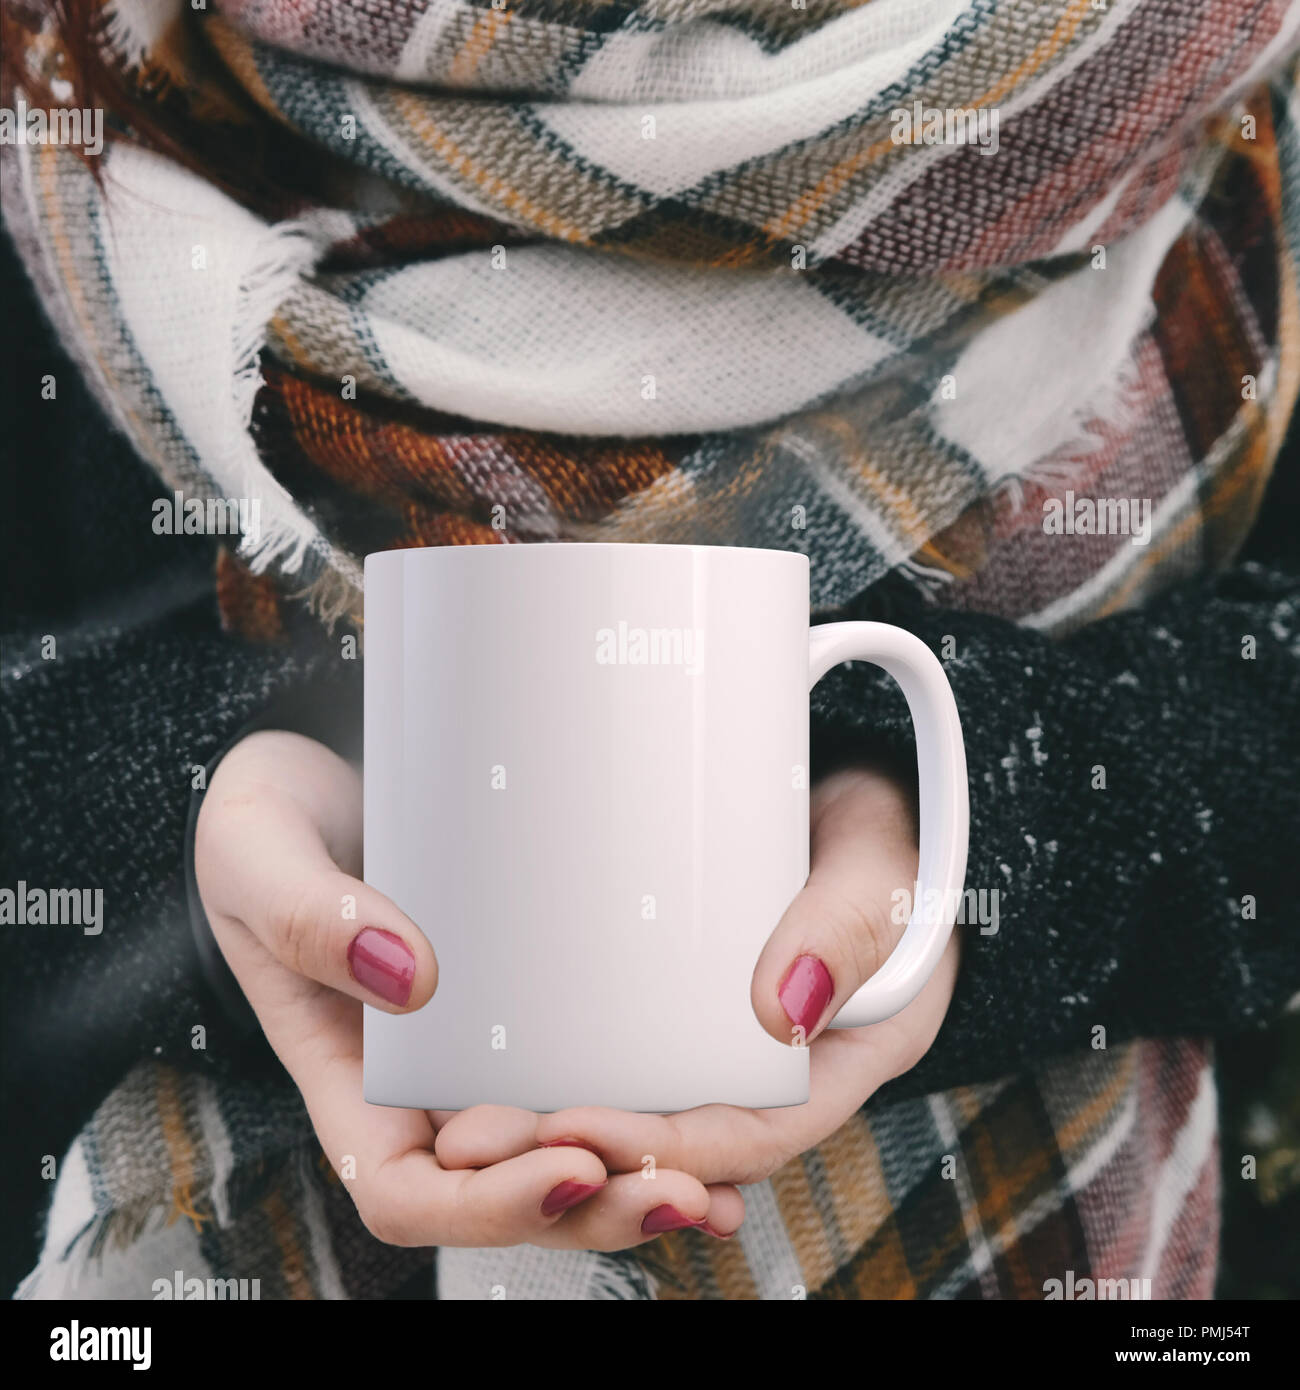 Winter Mug Mock Up White Blank Coffee Mug To Add Custom Design Or Quote Perfect For Businesses Selling Mugs Just Overlay Your Quote Or Design On To Stock Photo Alamy